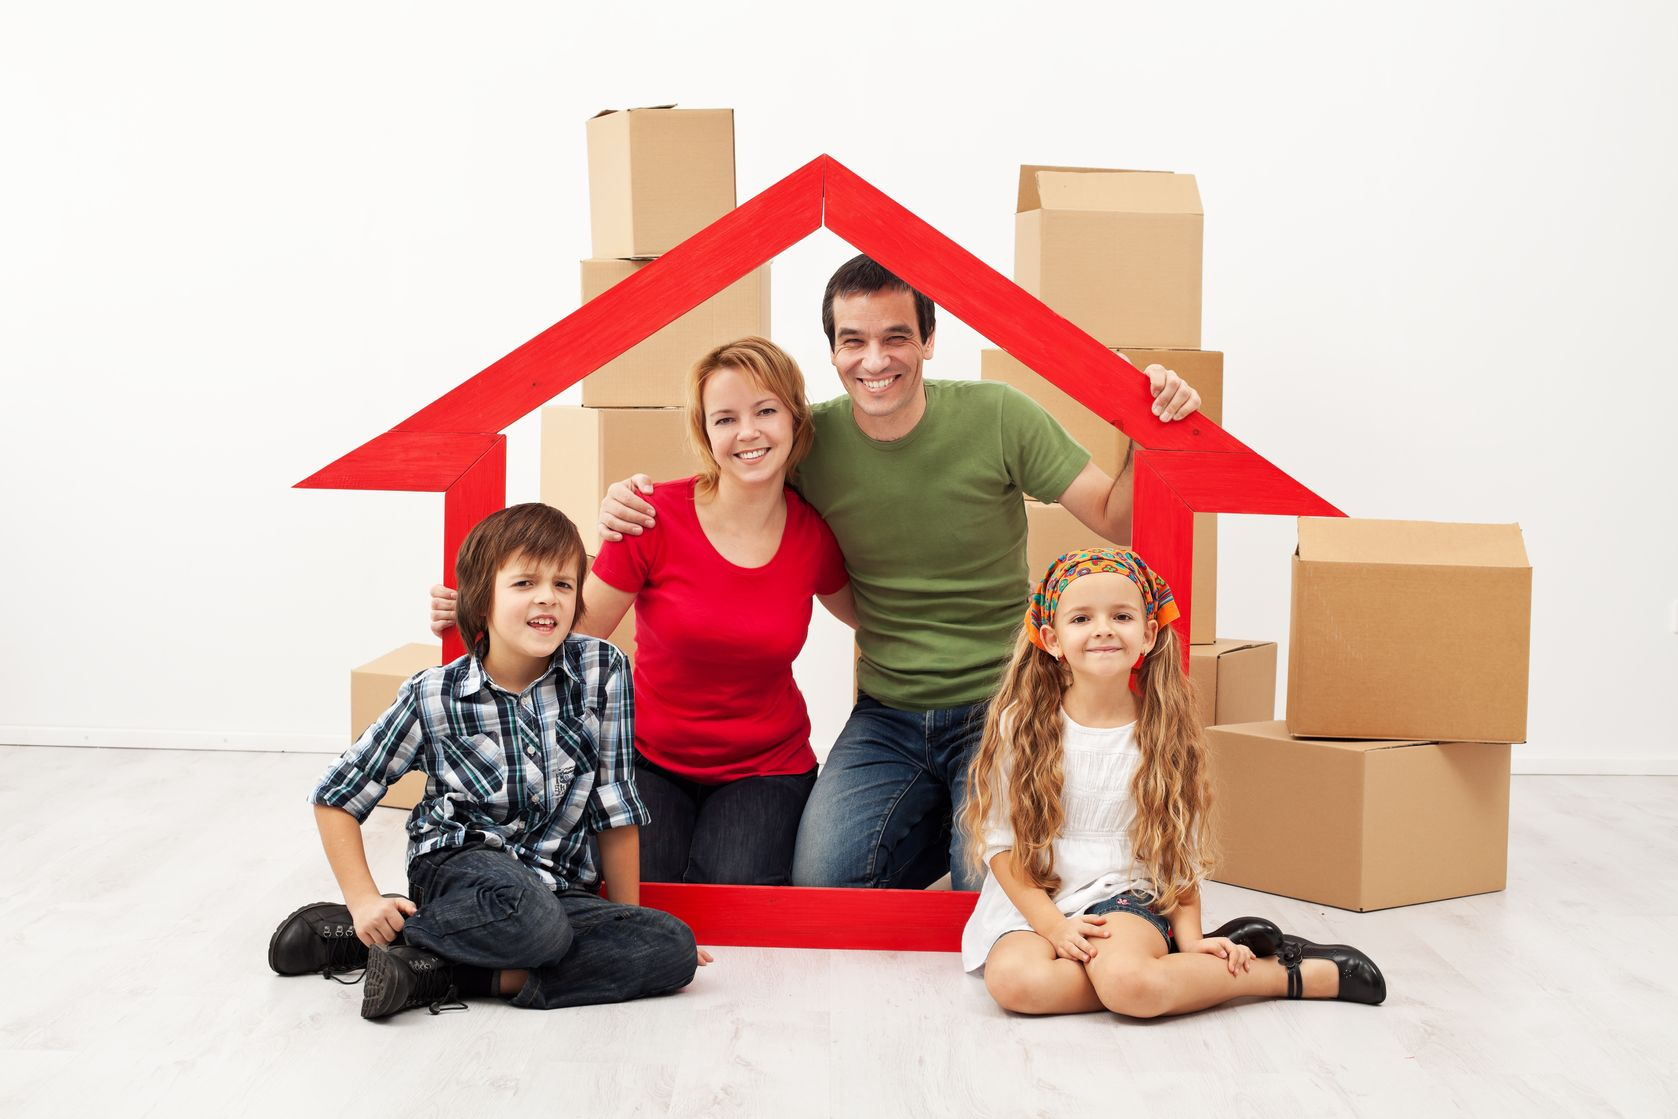 Eugene, OR. Homeowners Insurance